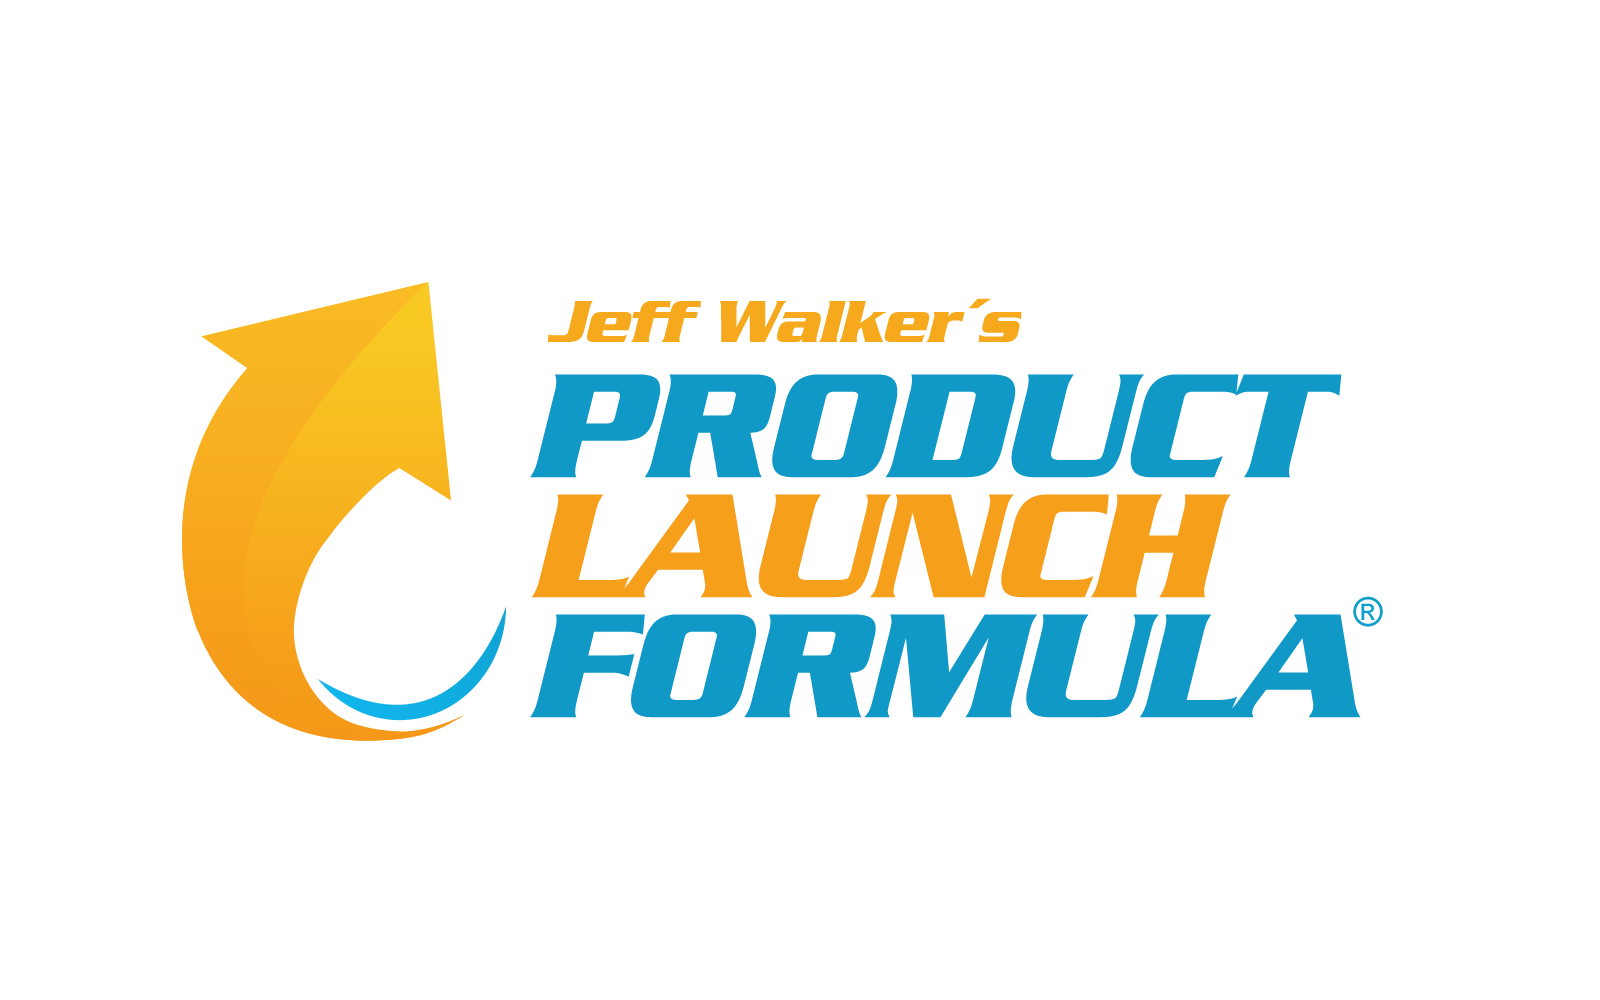 PRODUCT LAUNCH FORMULA DOWNLOAD